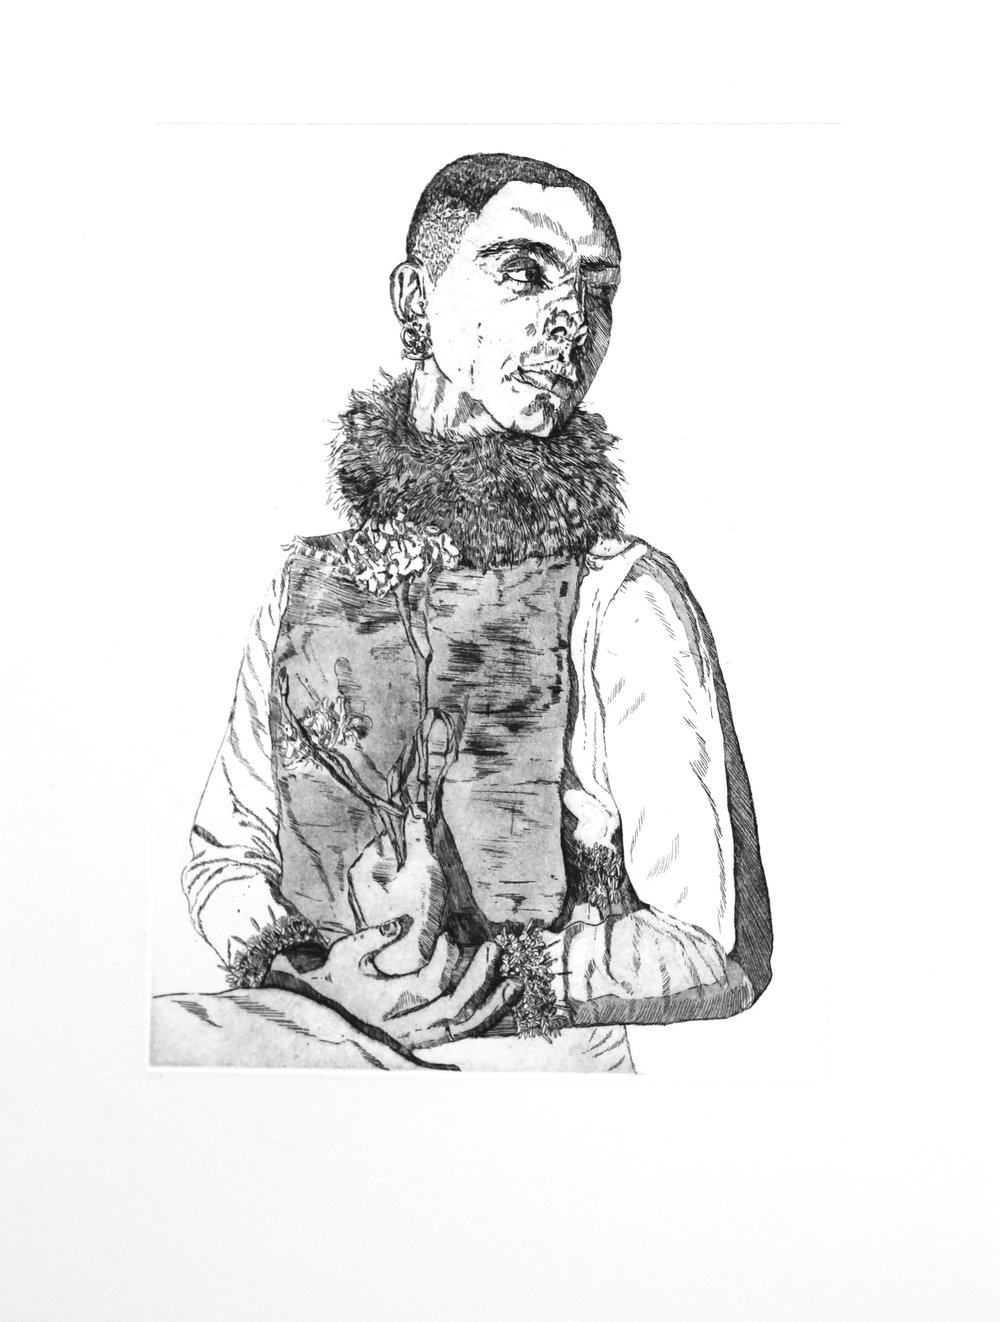 'Orlando,' Etching, aquatint and spitbite on Somerset, 36 x 48 cm